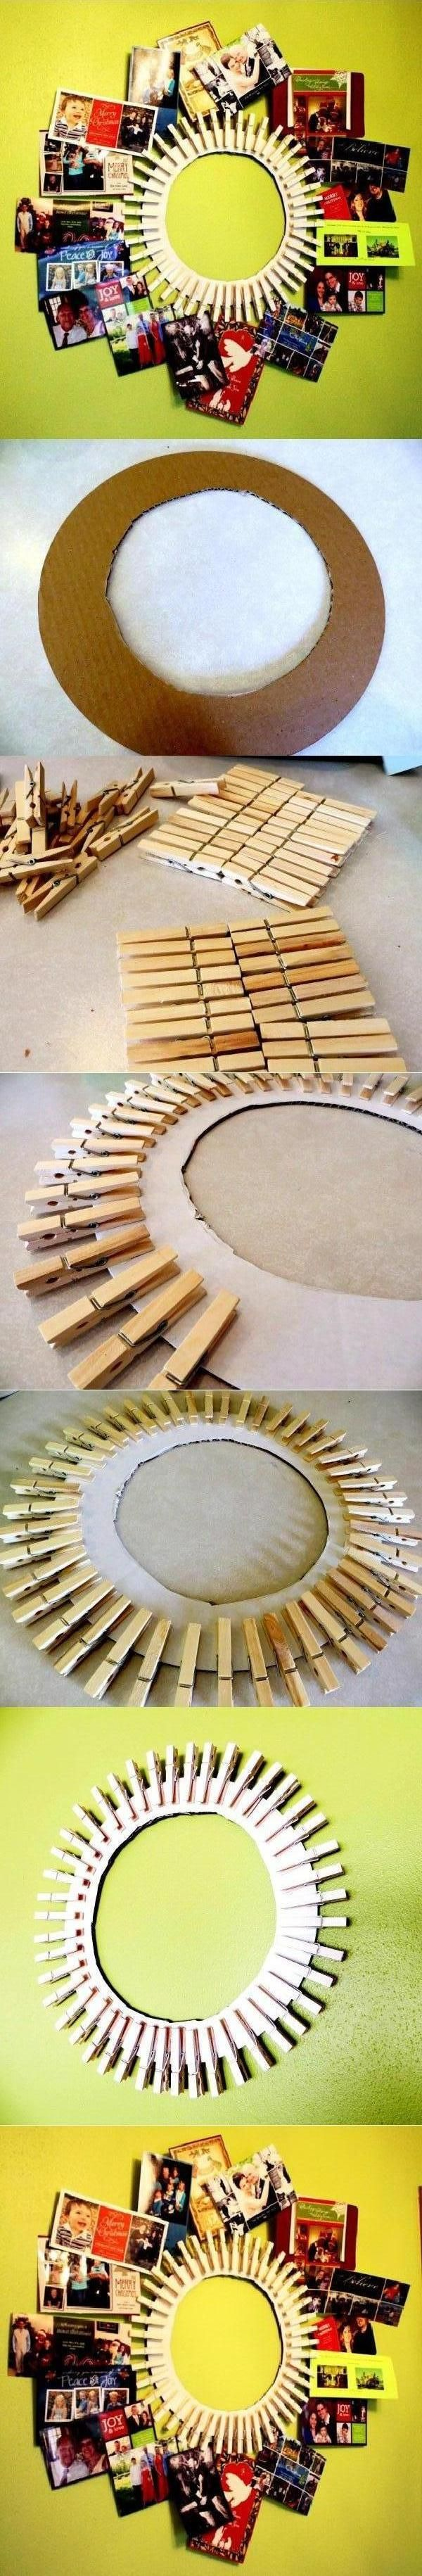 DIY Clothespin Picture Frame...so doing this!